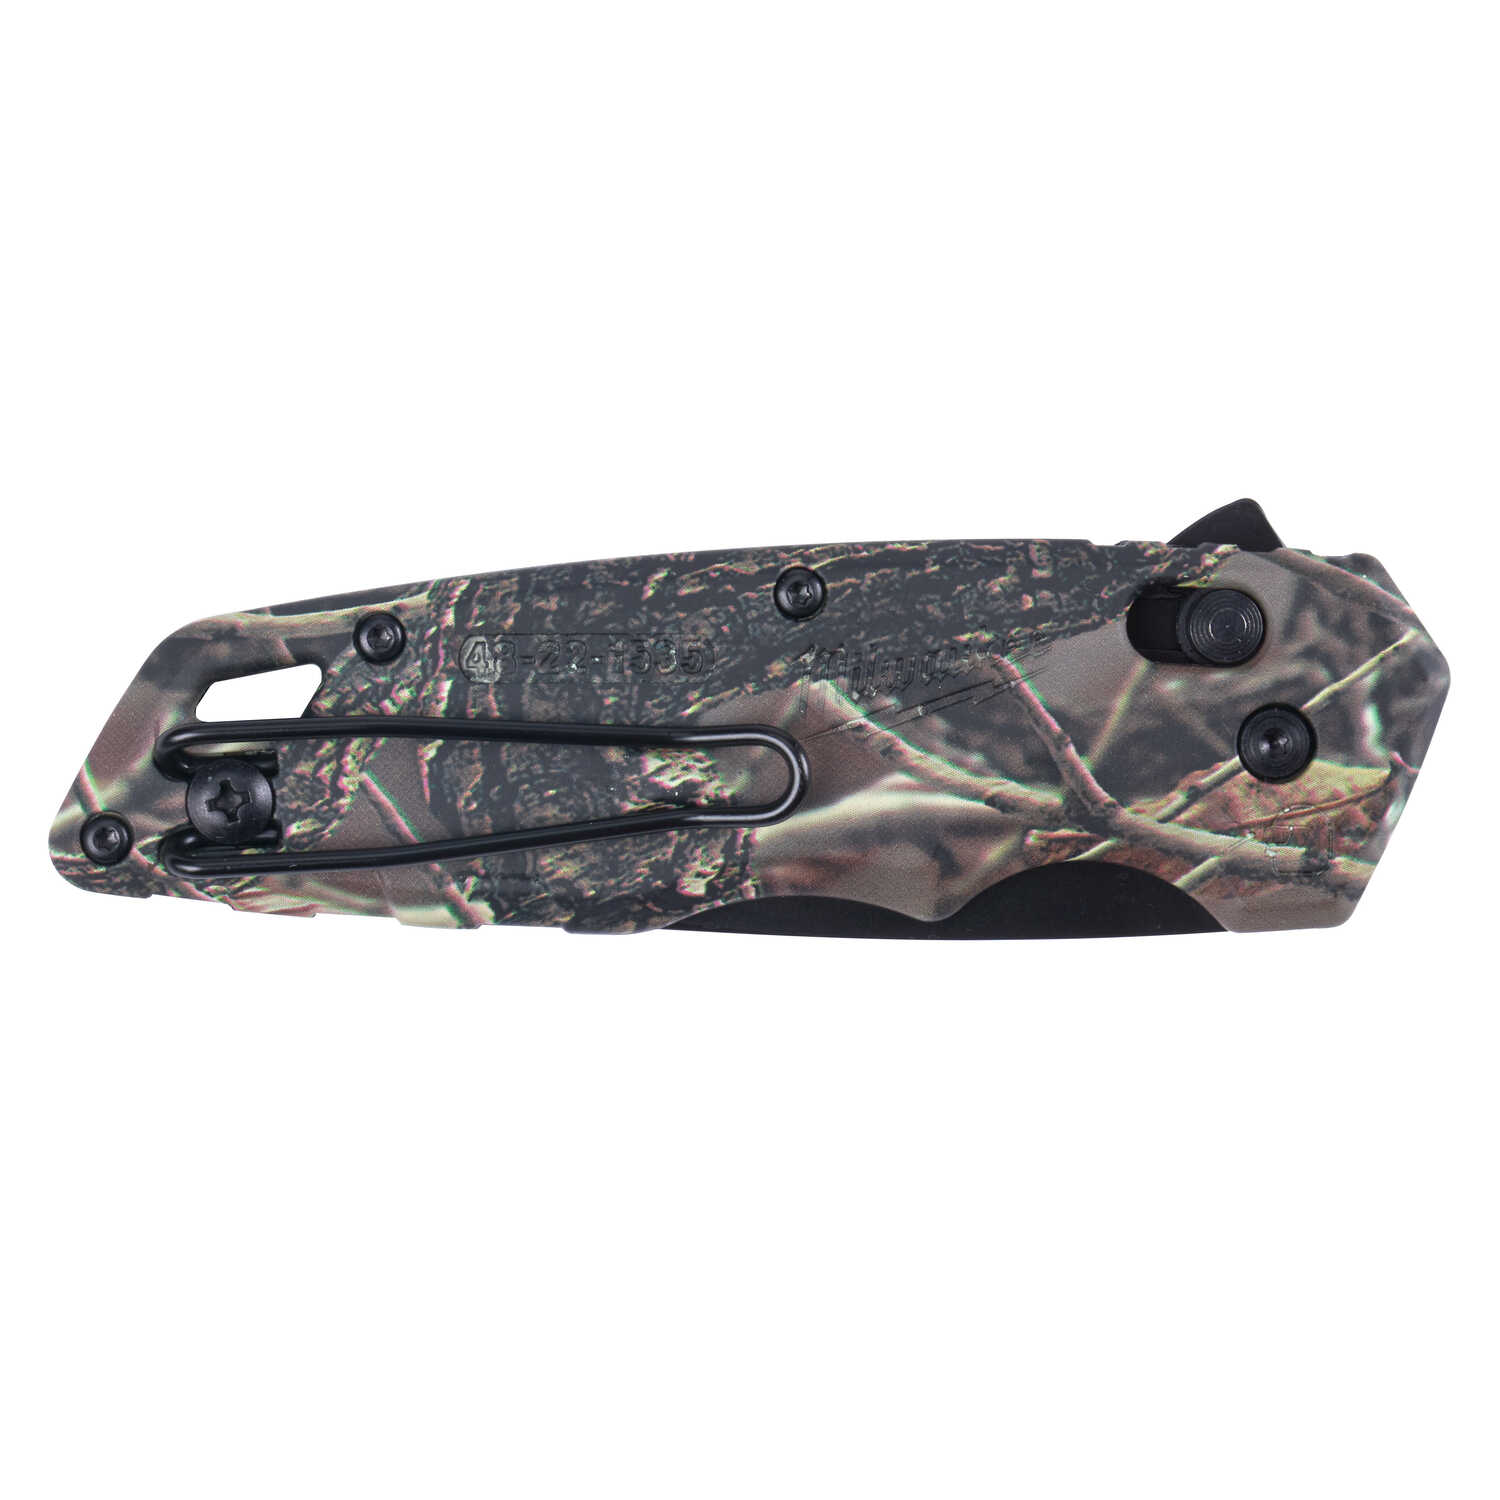 Milwaukee  Fastback  7-3/4 in. Flip  Spring Assisted Pocket Knife  Camouflage  1 pk